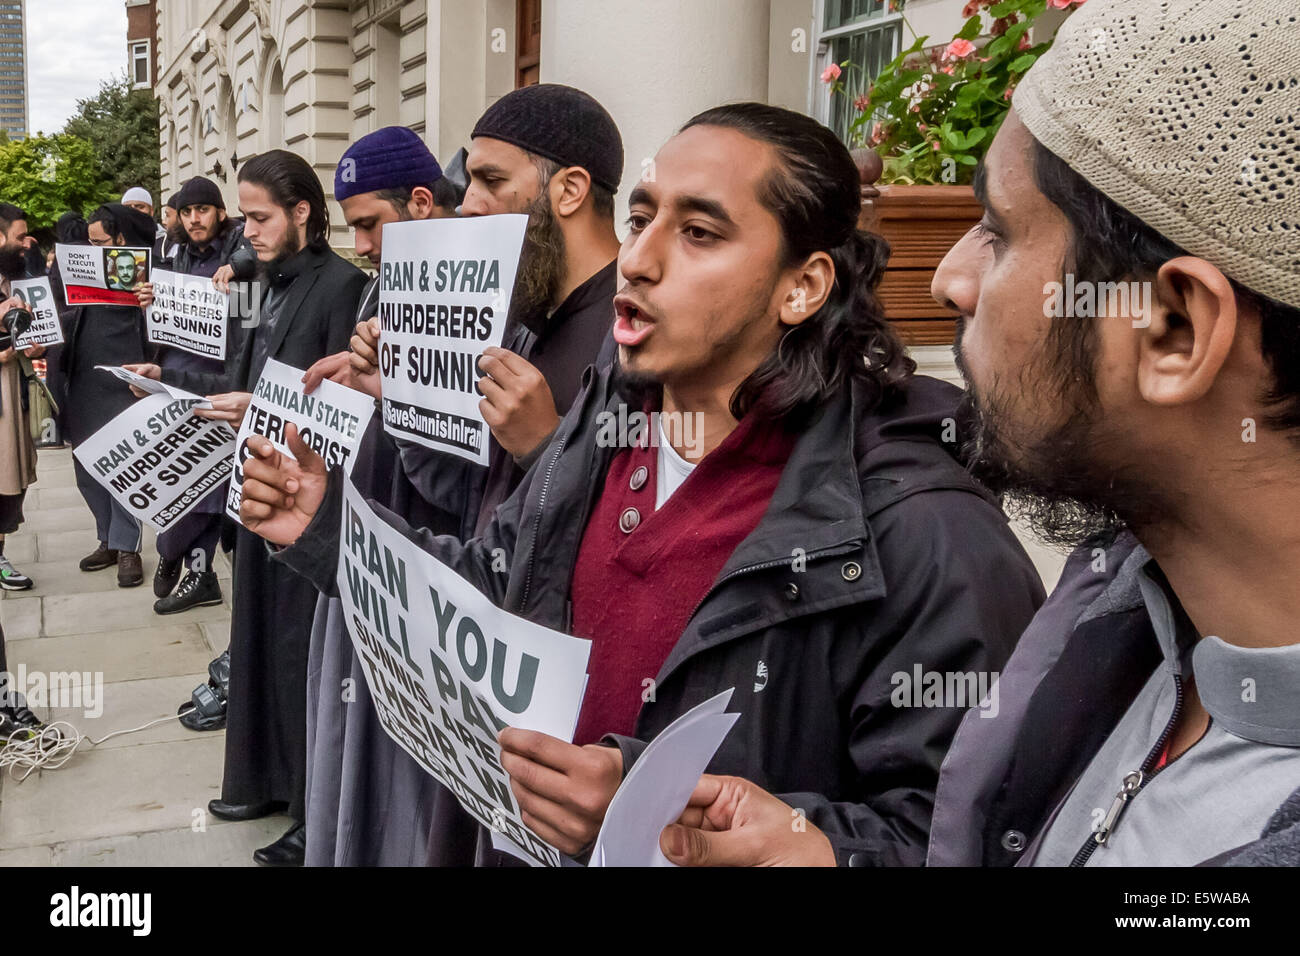 London, UK. 6th Aug, 2014. FILEPIX: Taken 18th Sept, 2013. Afsor Ali terrorism charges at Old Bailey Court Credit: - Stock Image